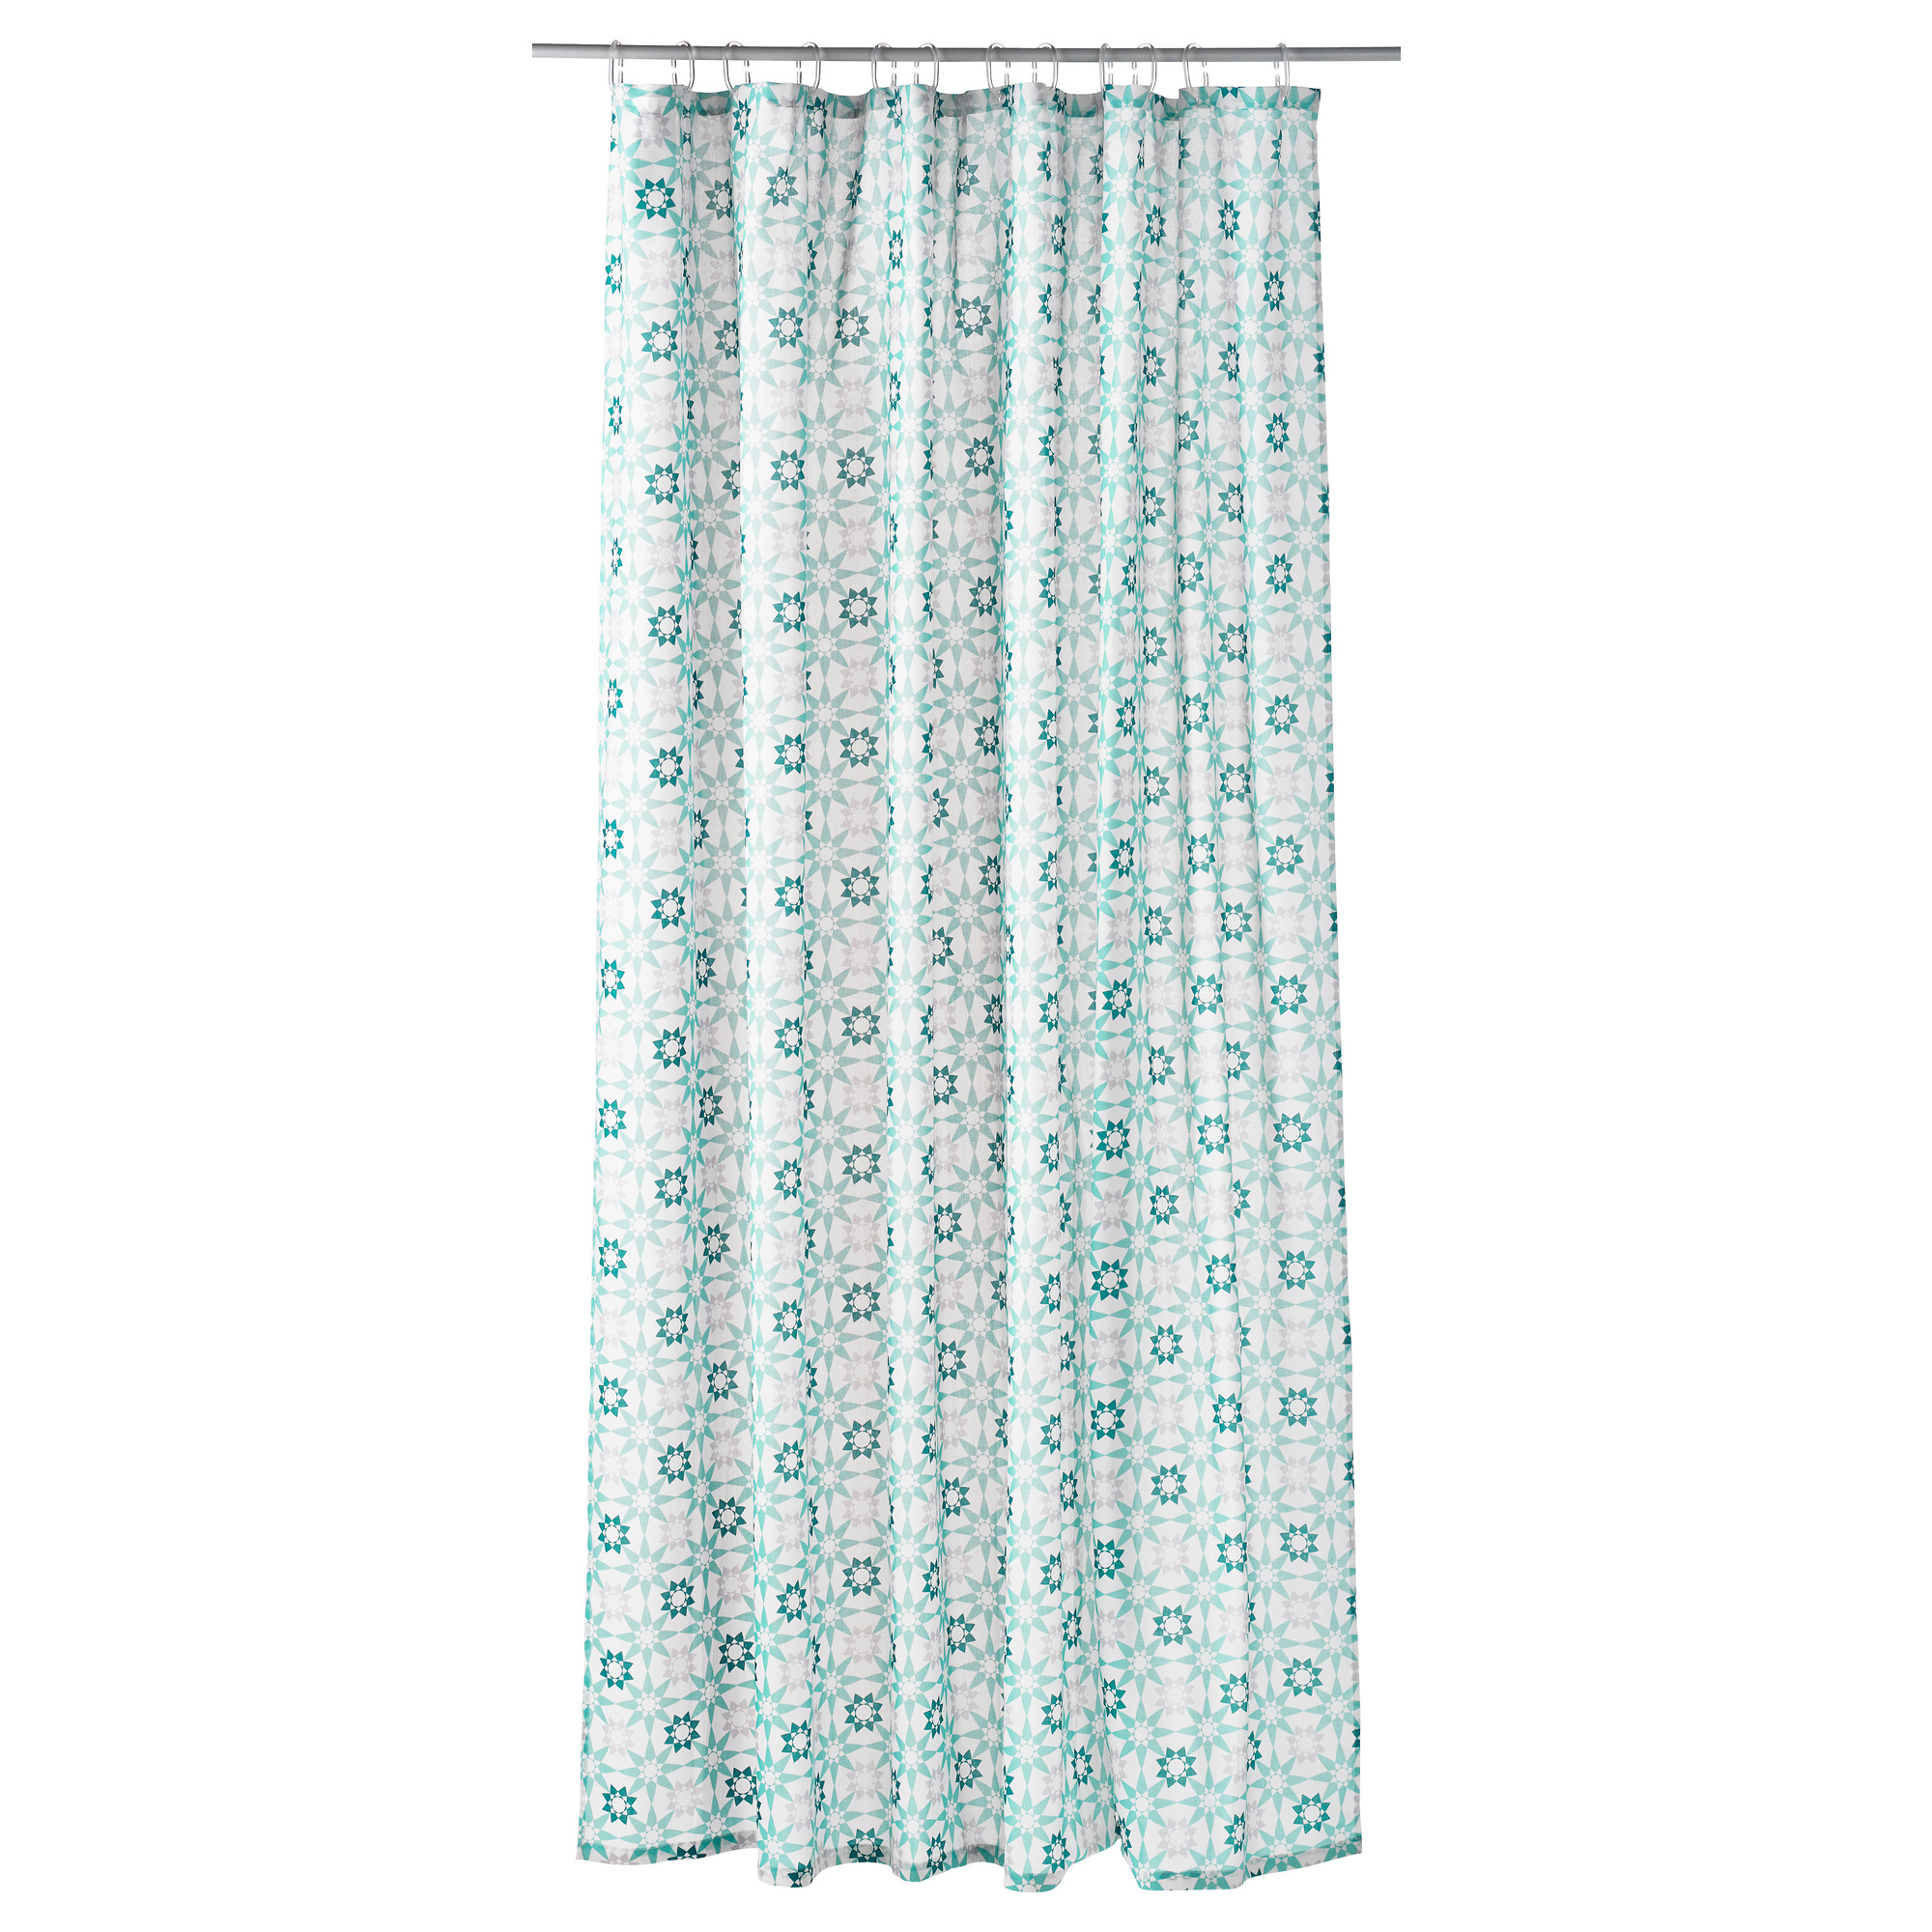 Curtain: Ikea Shower Curtain | 84 Shower Curtain | Xl Shower Curtain